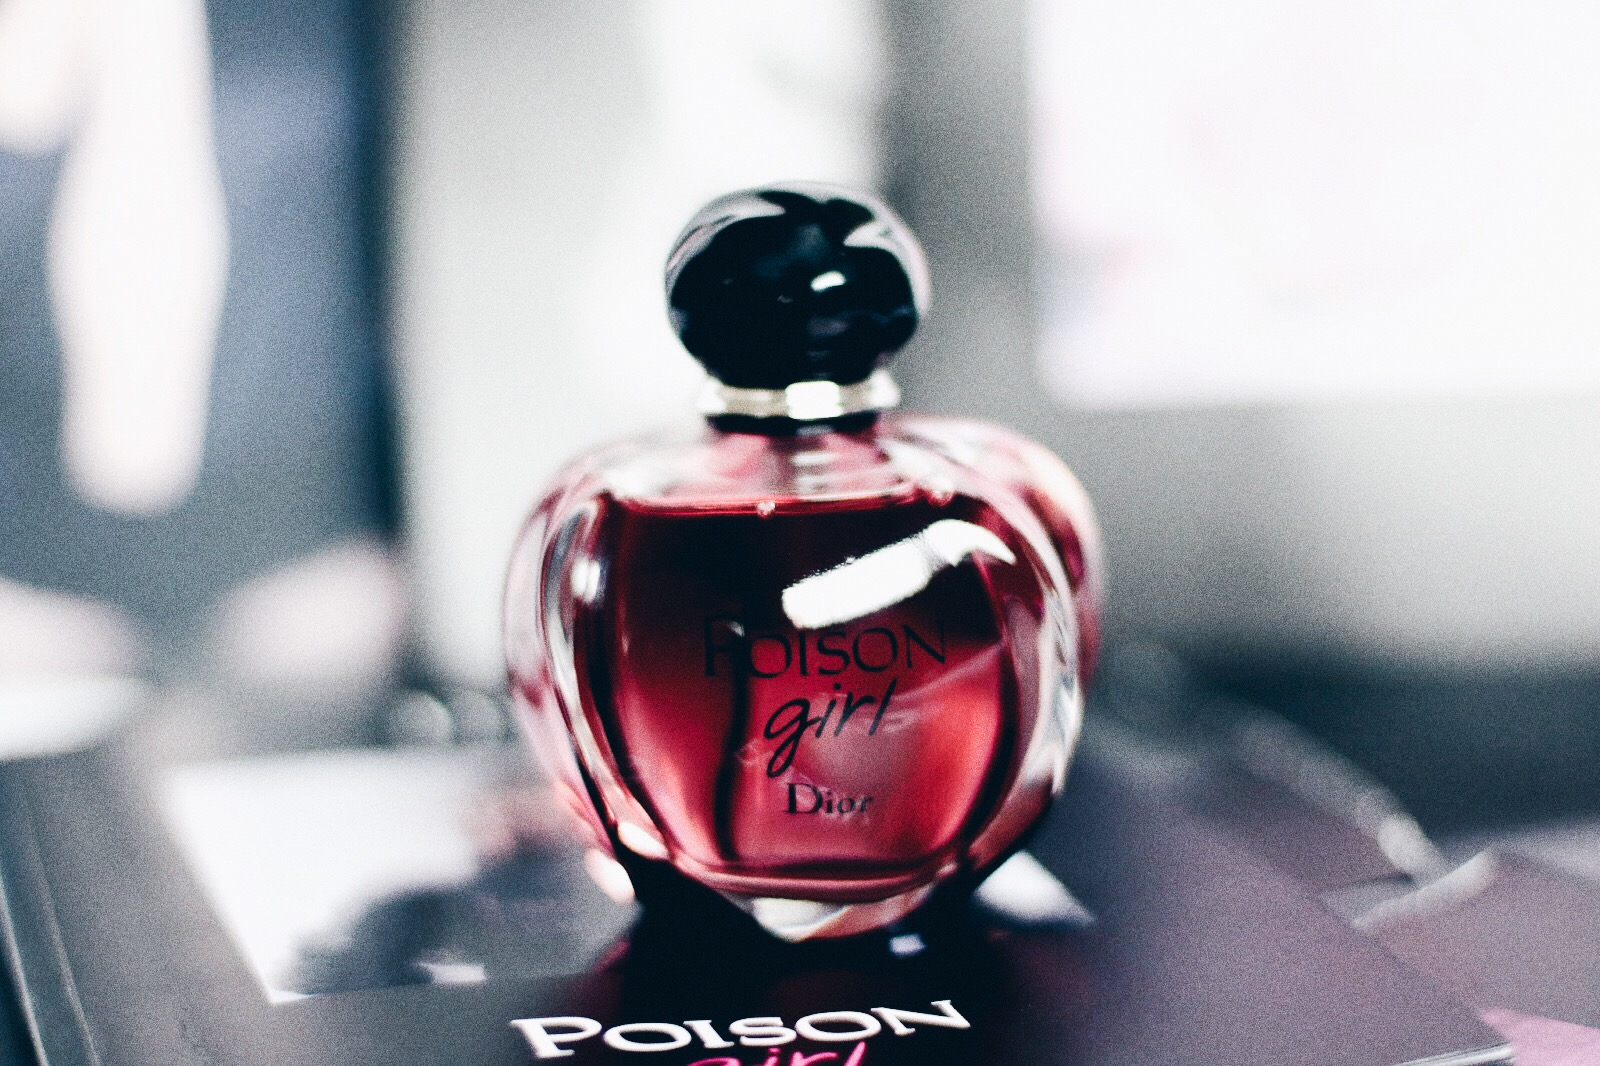 Poison Girl Dior Kleo Beauté